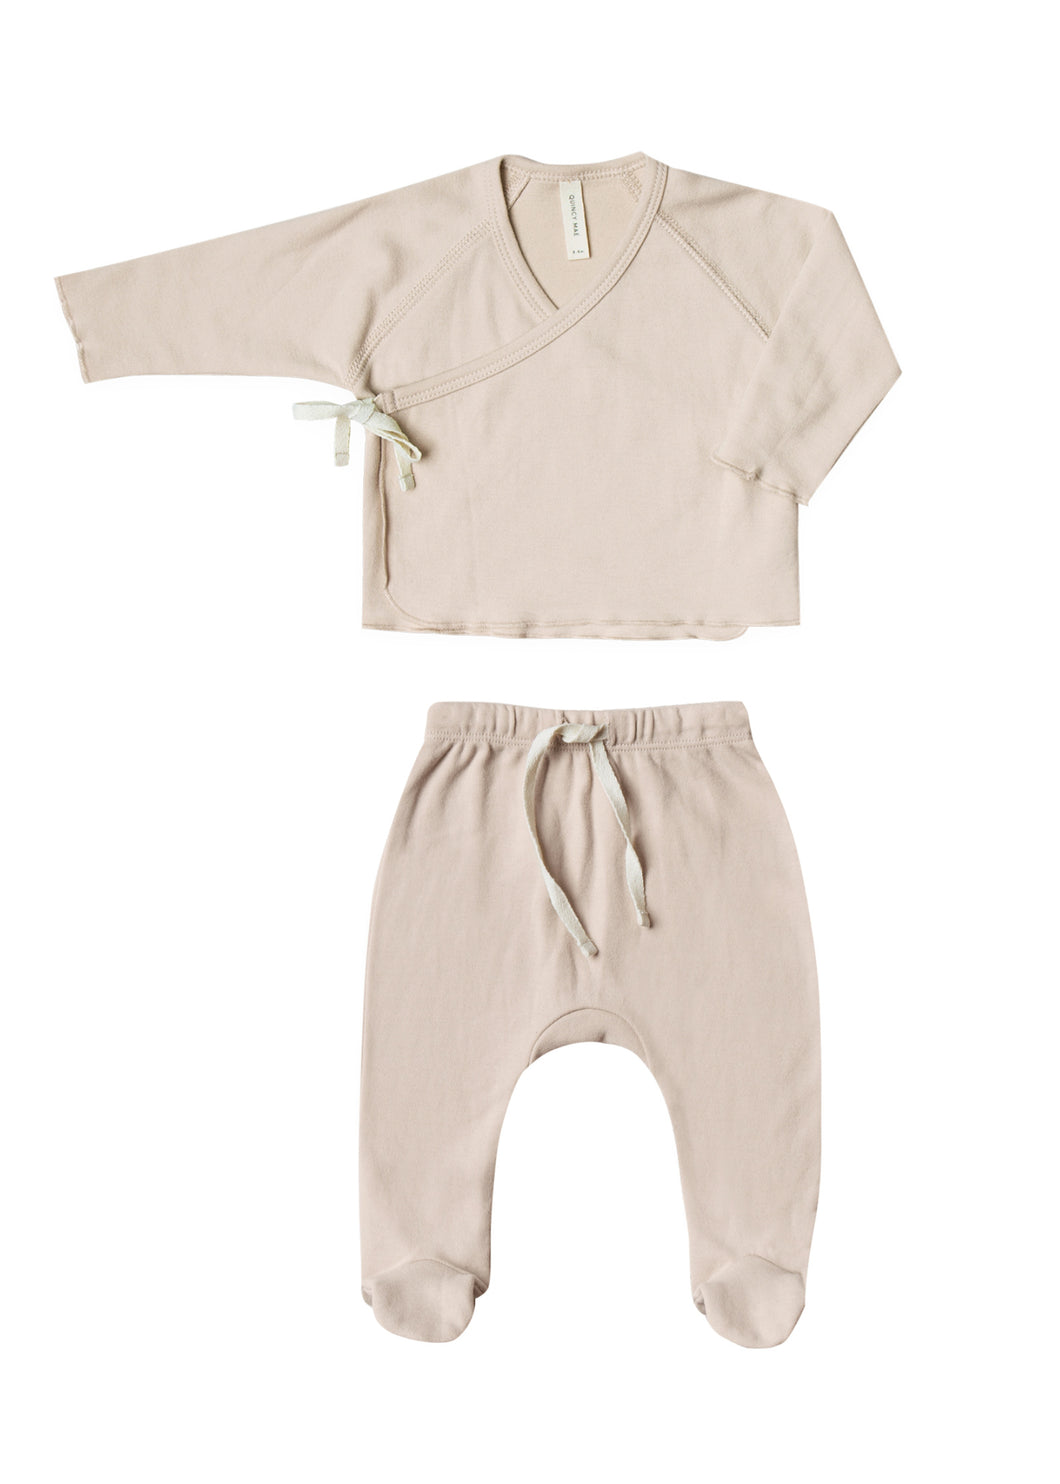 Kimono Top and Footed Pant Set